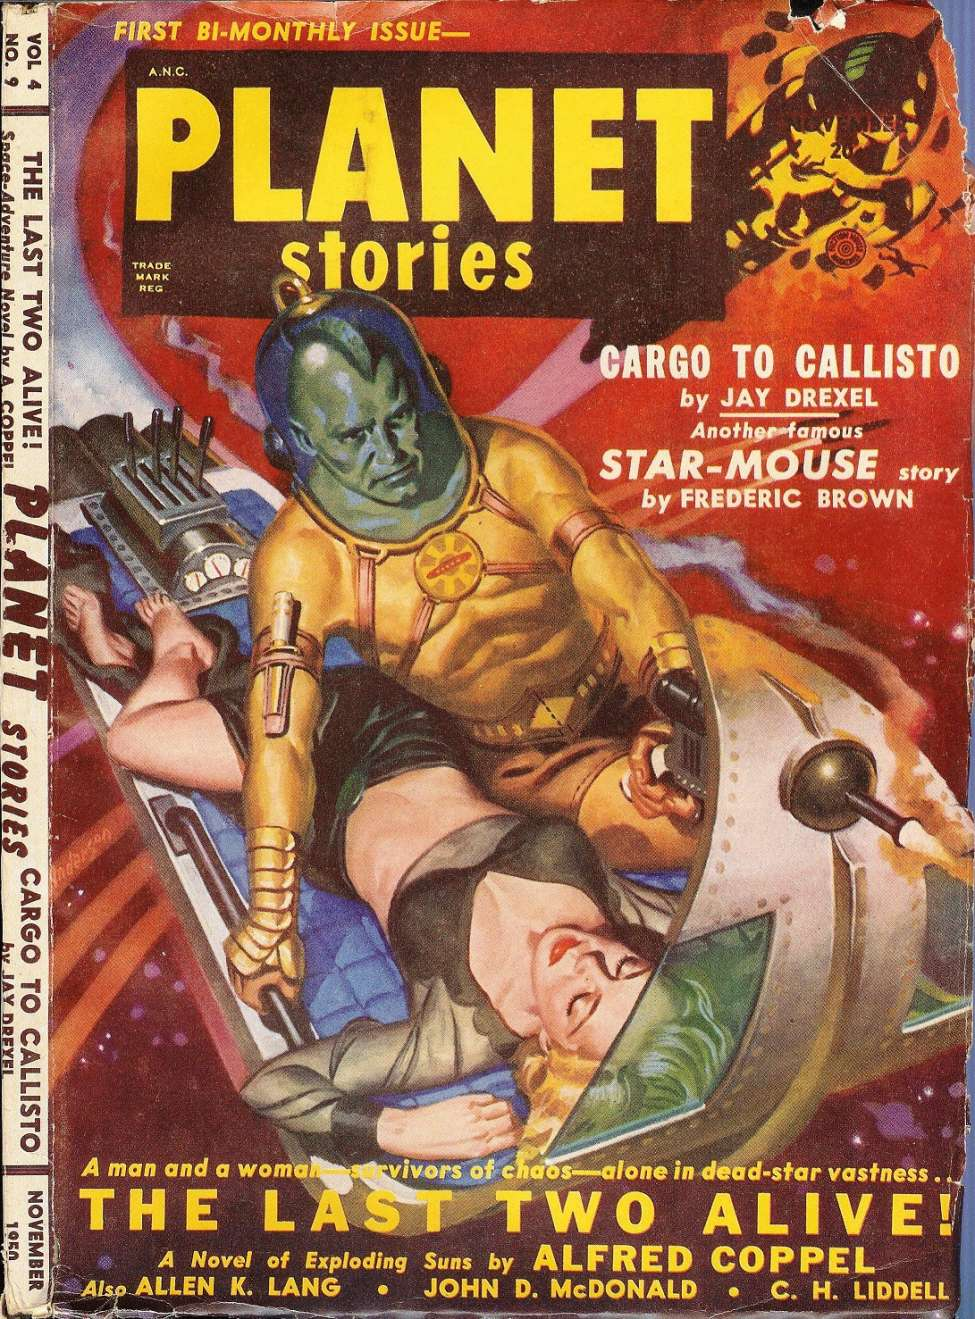 Comic Book Cover For Planet Stories v04 09 - The Last Two Alive! - Alfred Coppel, Jr.